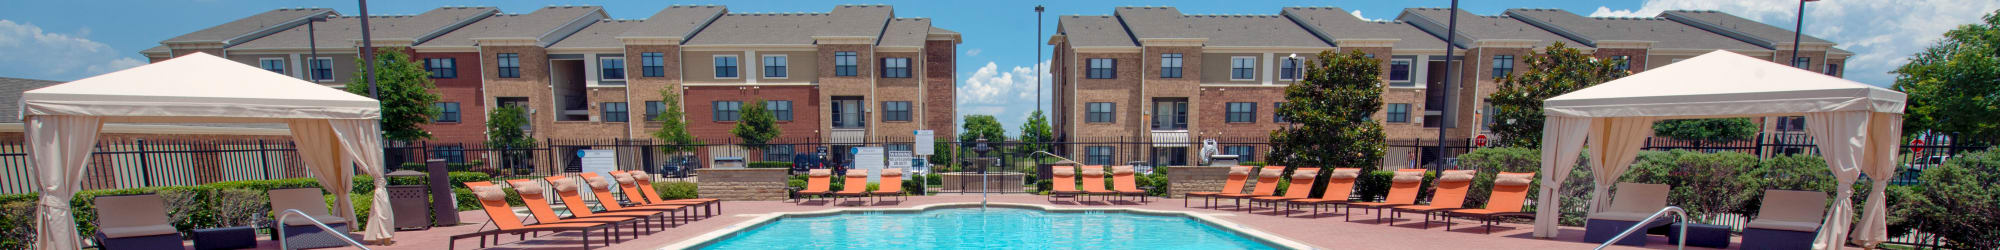 Contact The Atlantic McKinney Ranch for information about our apartments in McKinney